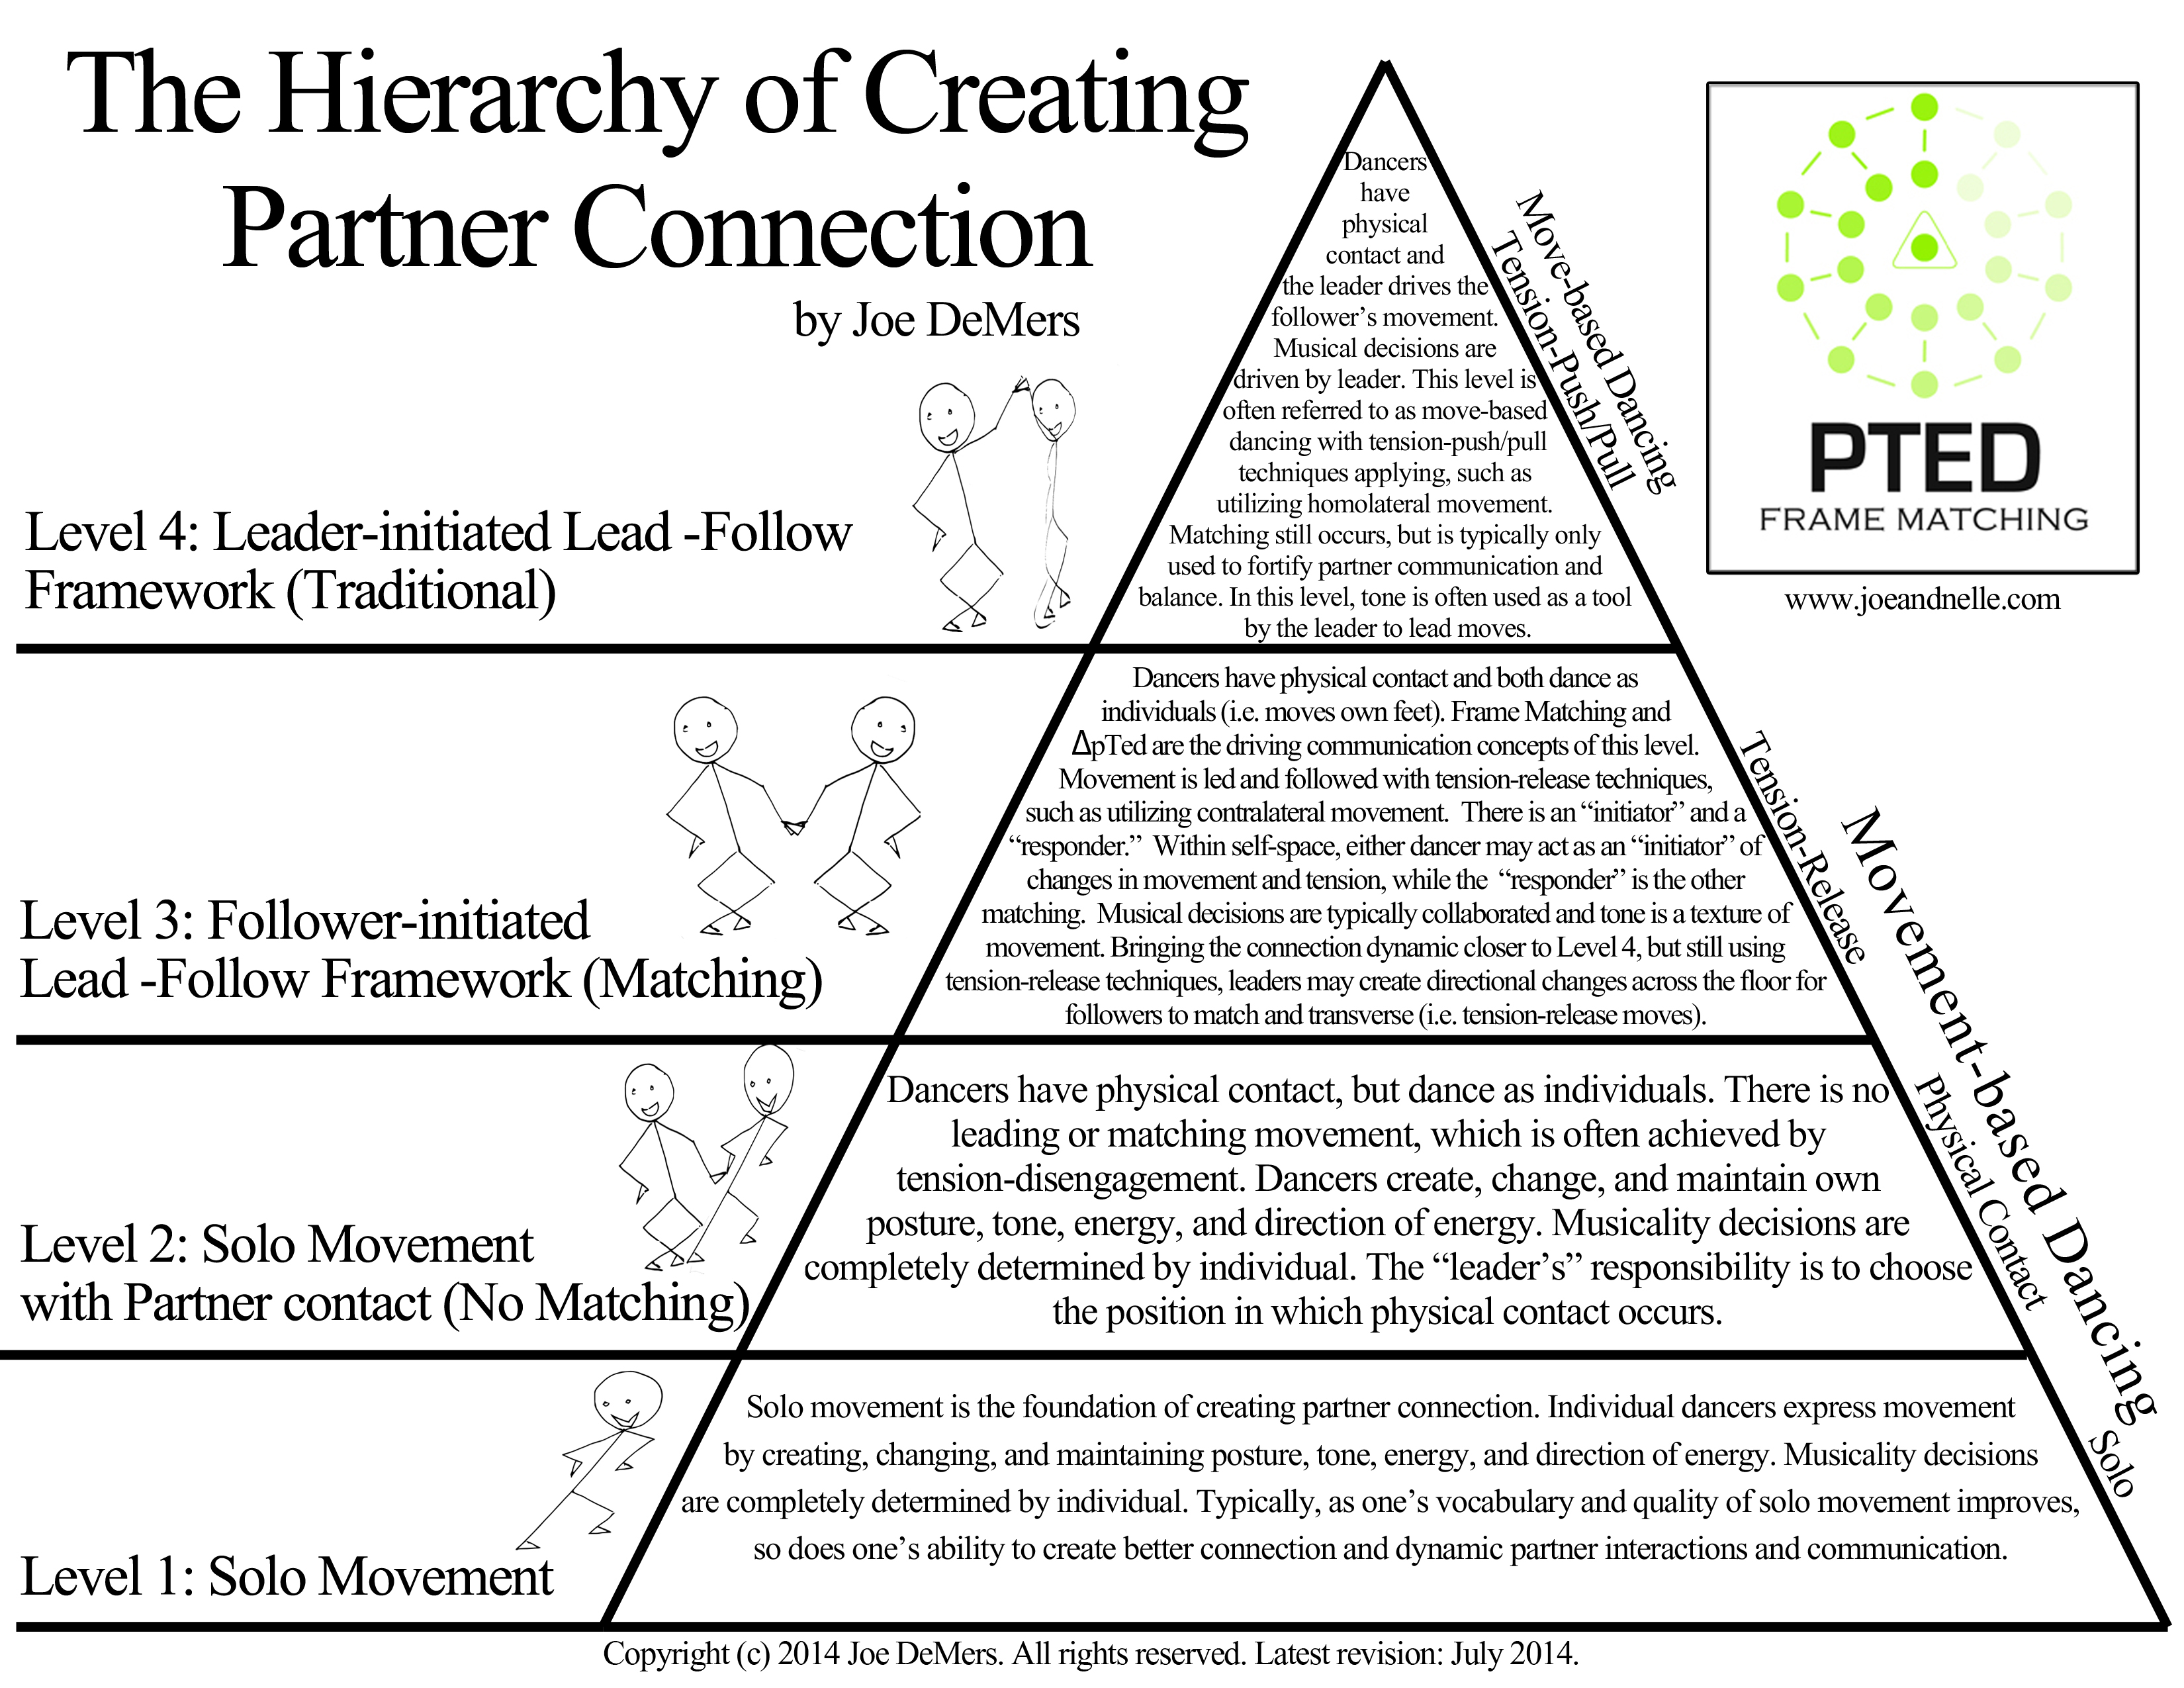 Hierarchy of Creating Partner Connection - Frame matching and ∆pTed